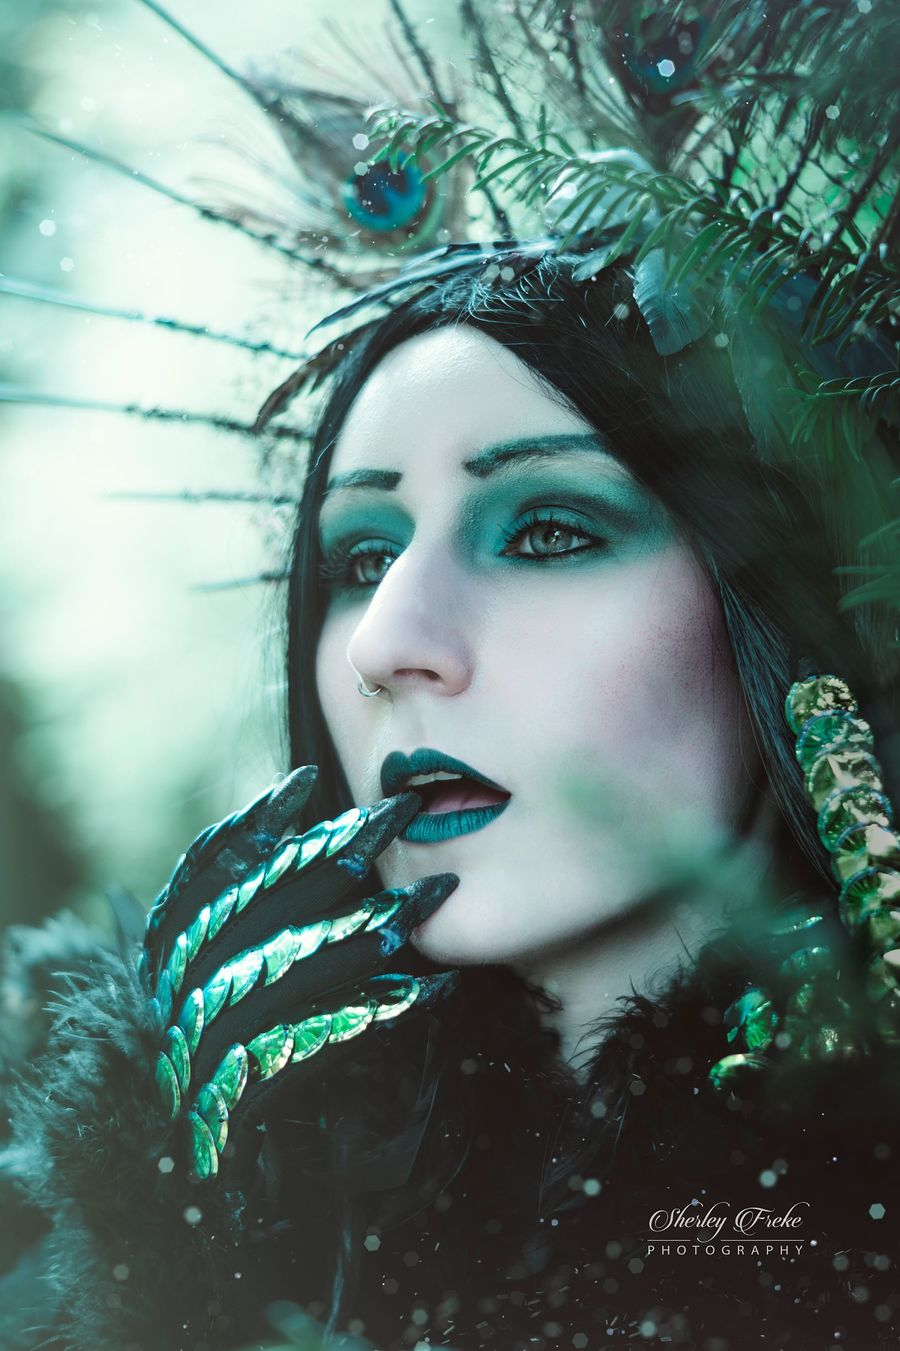 Peacock Gothic / Photography by SherleysPhotography, Model Dragica, Makeup by Dragica / Uploaded 13th November 2018 @ 07:59 PM